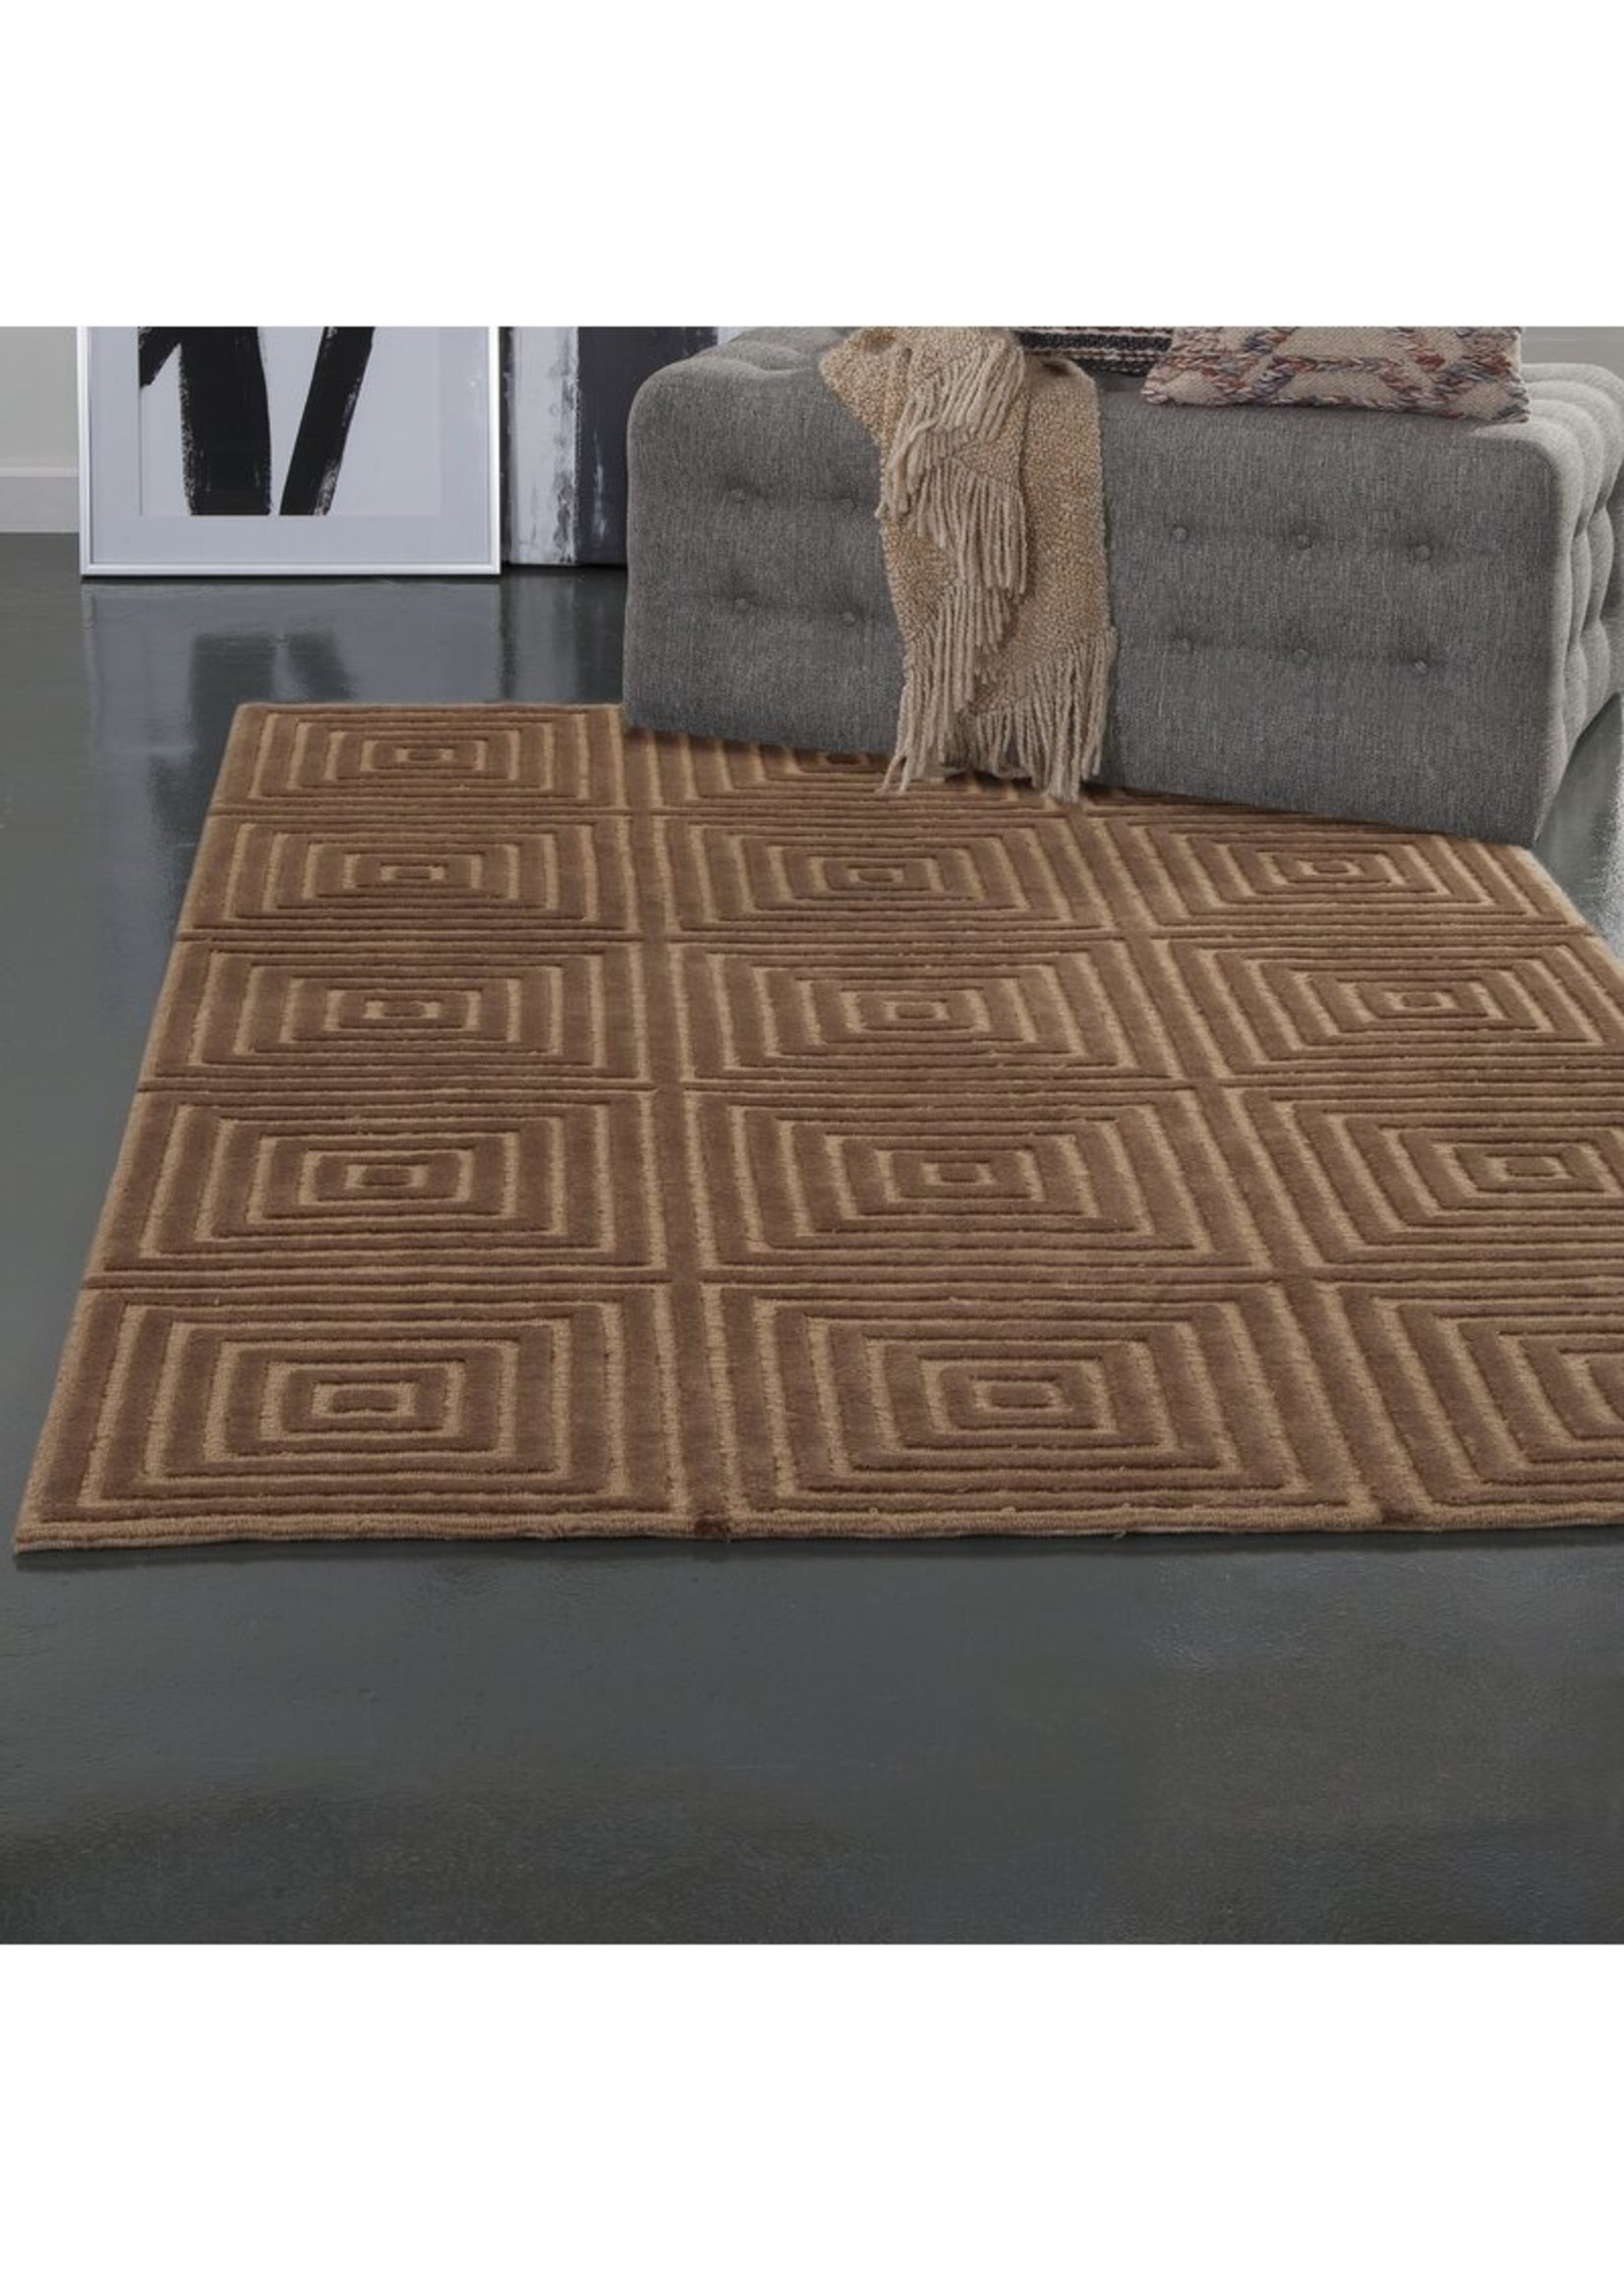 *8' x 10' - Tawney Geometric Hand-Knotted Wool Gold/Brown Area Rug